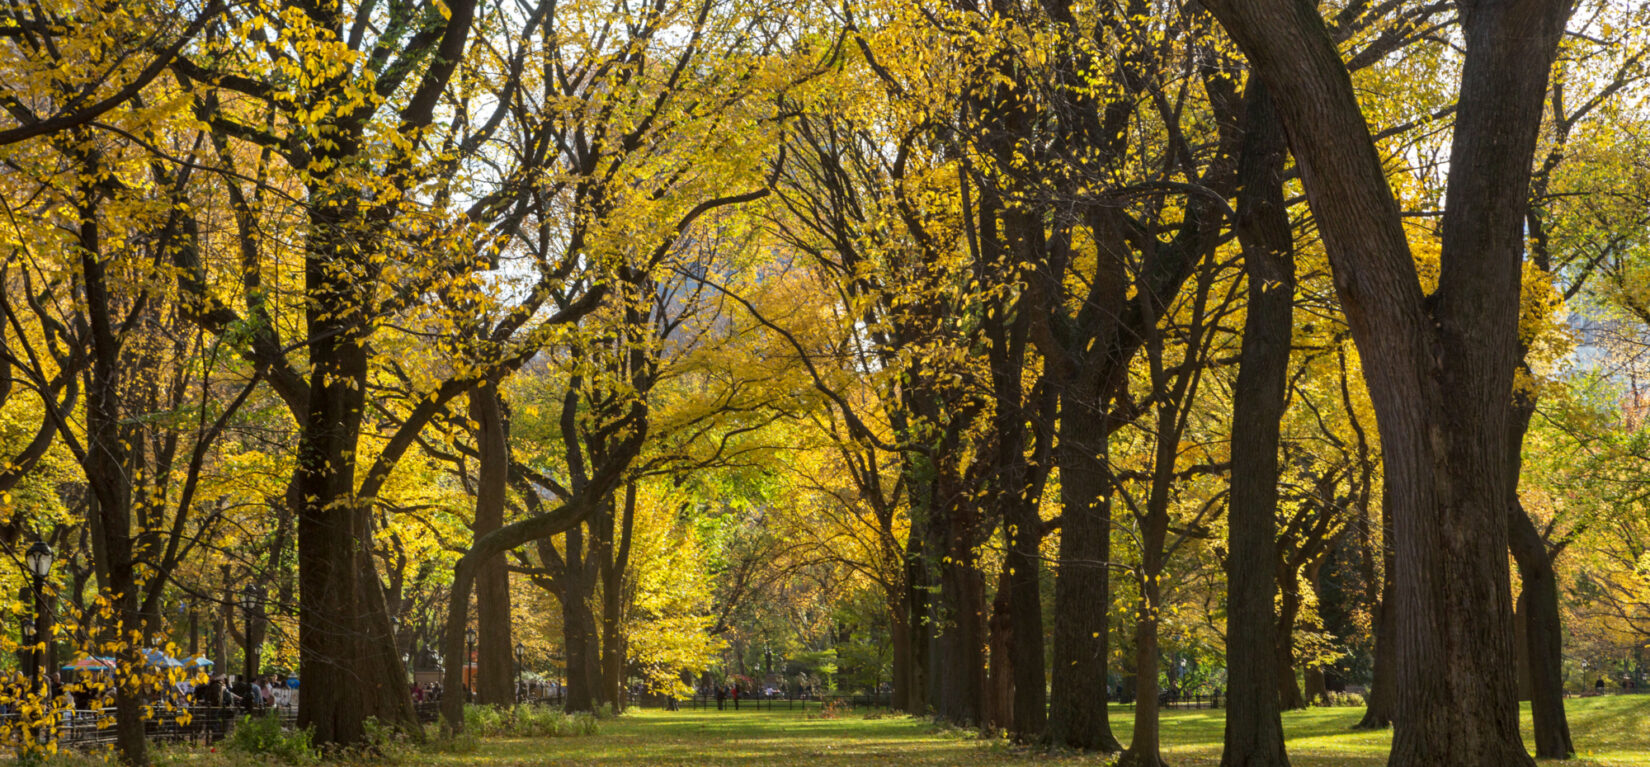 Looking down a row of American Elms in fall colors at the Mall